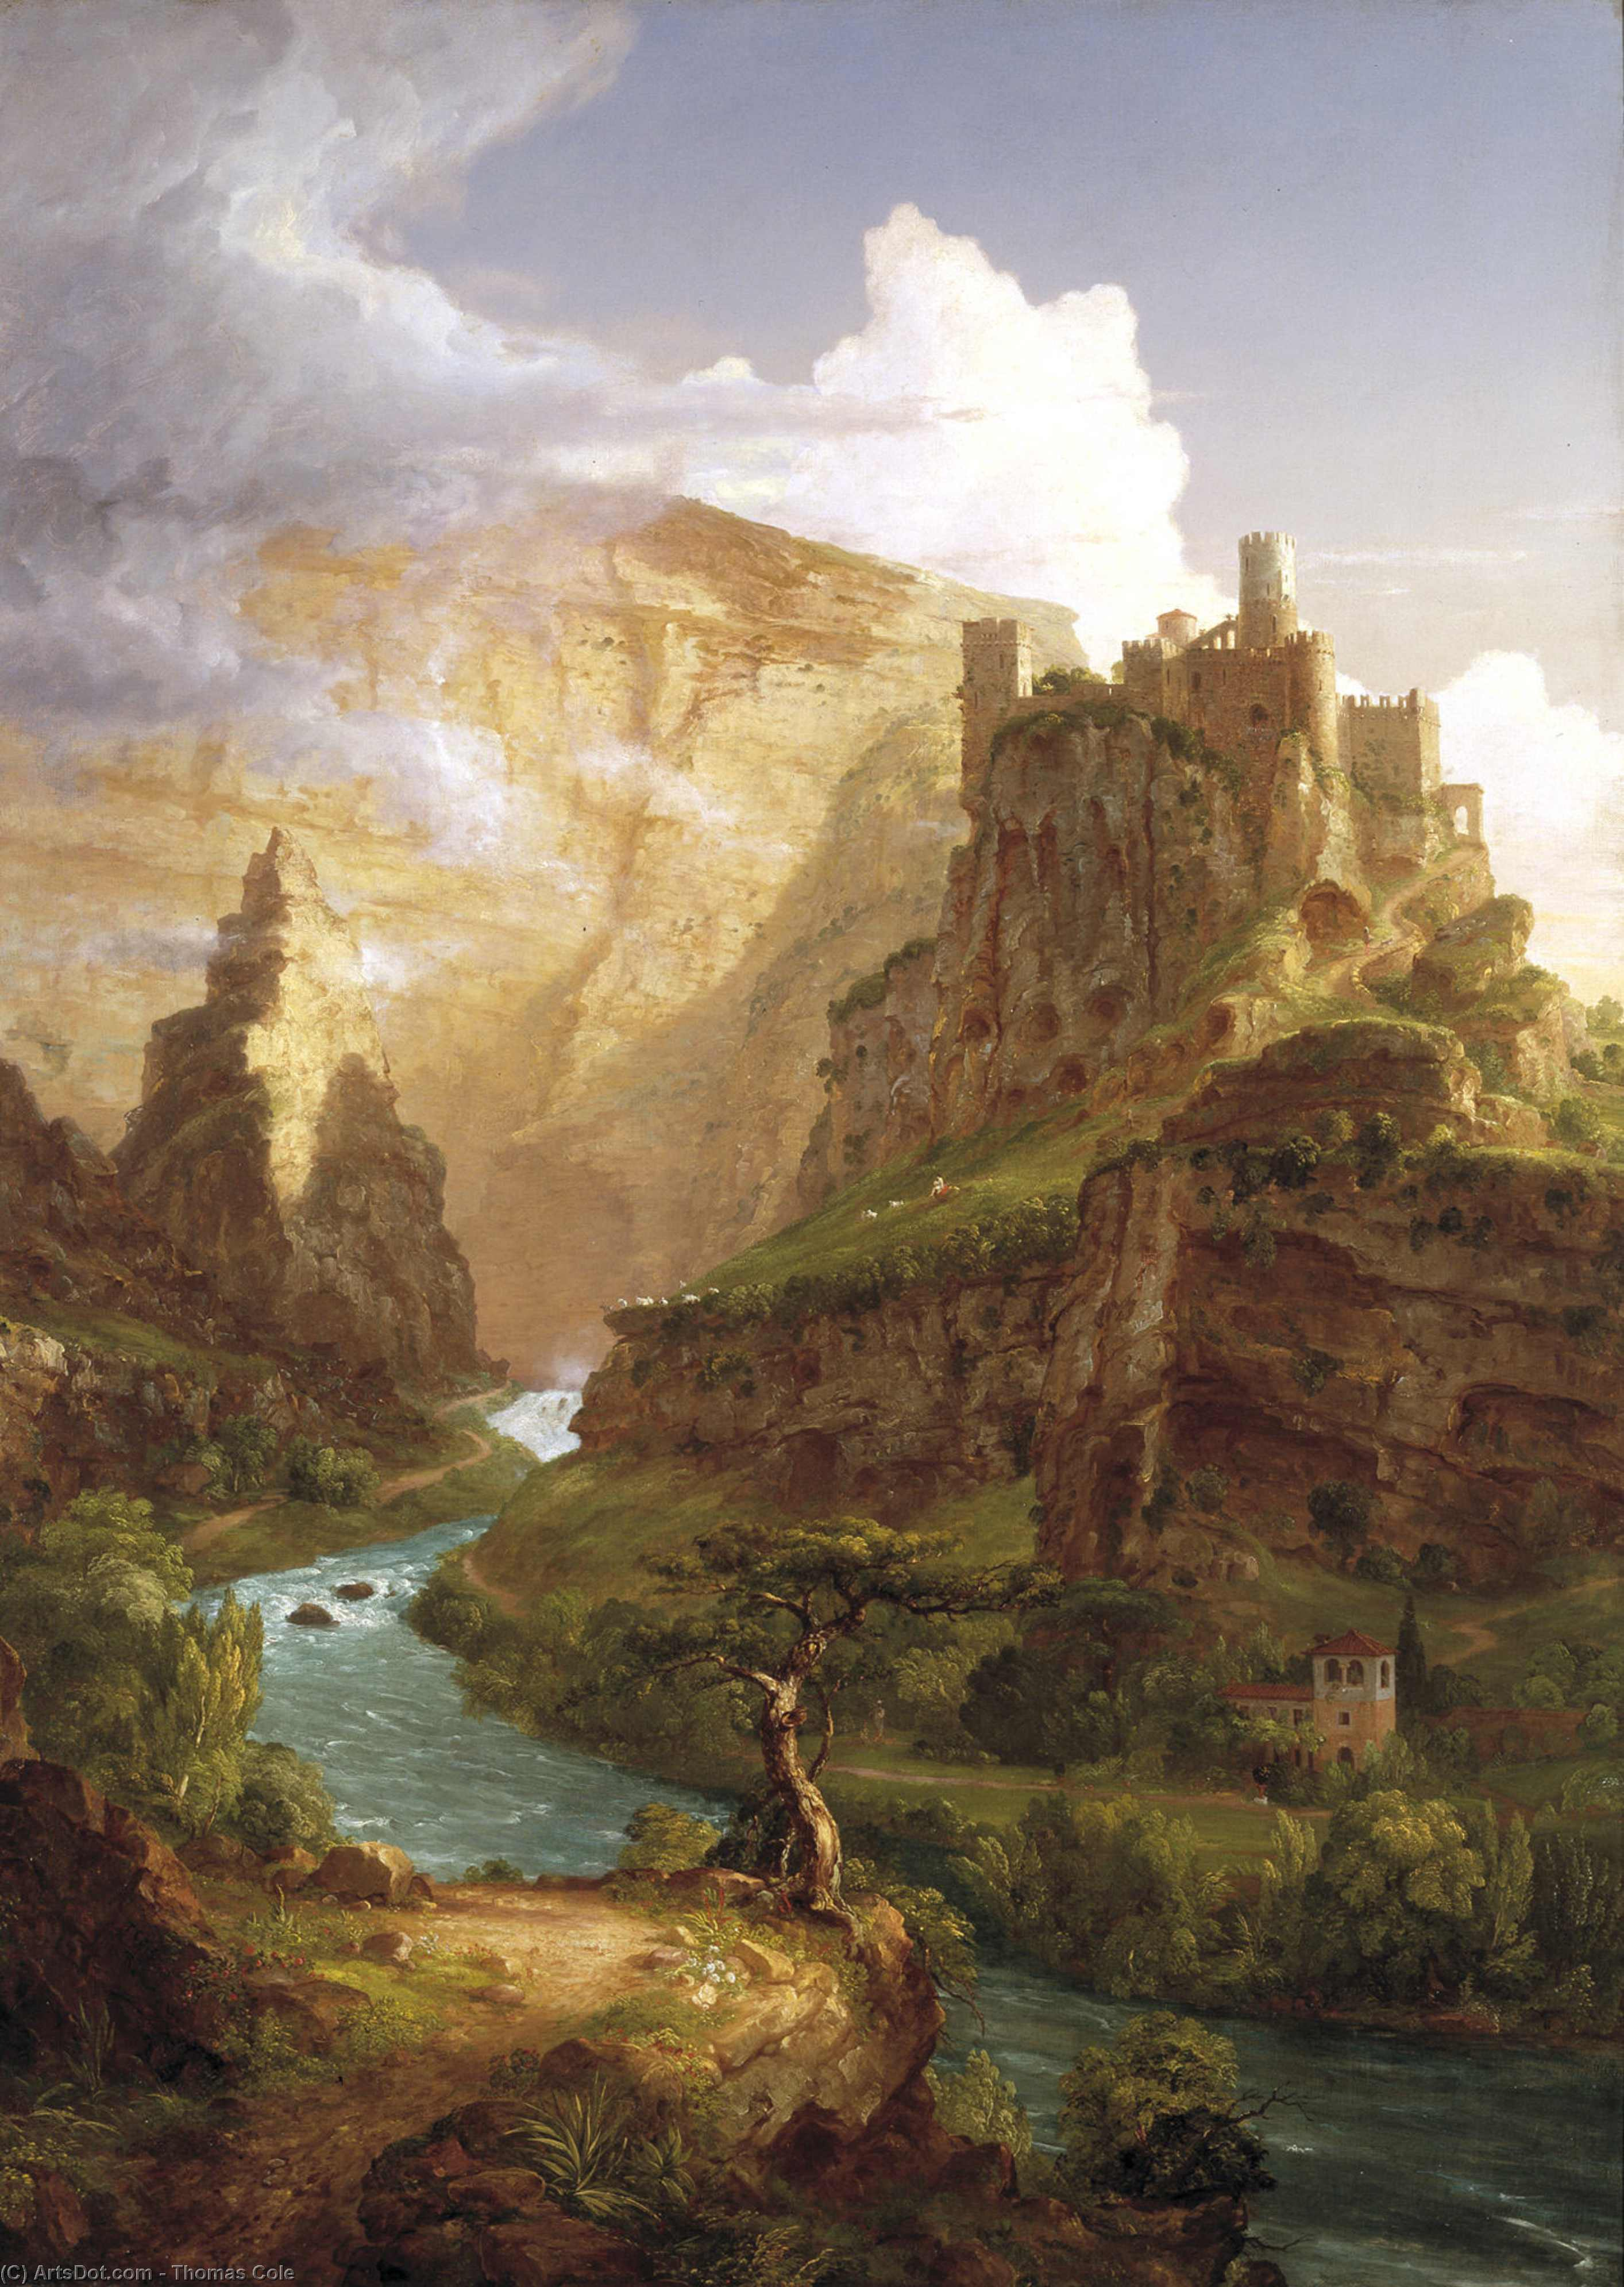 o fonte de vaucluse, 1841 por Thomas Cole (1801-1848, United Kingdom)